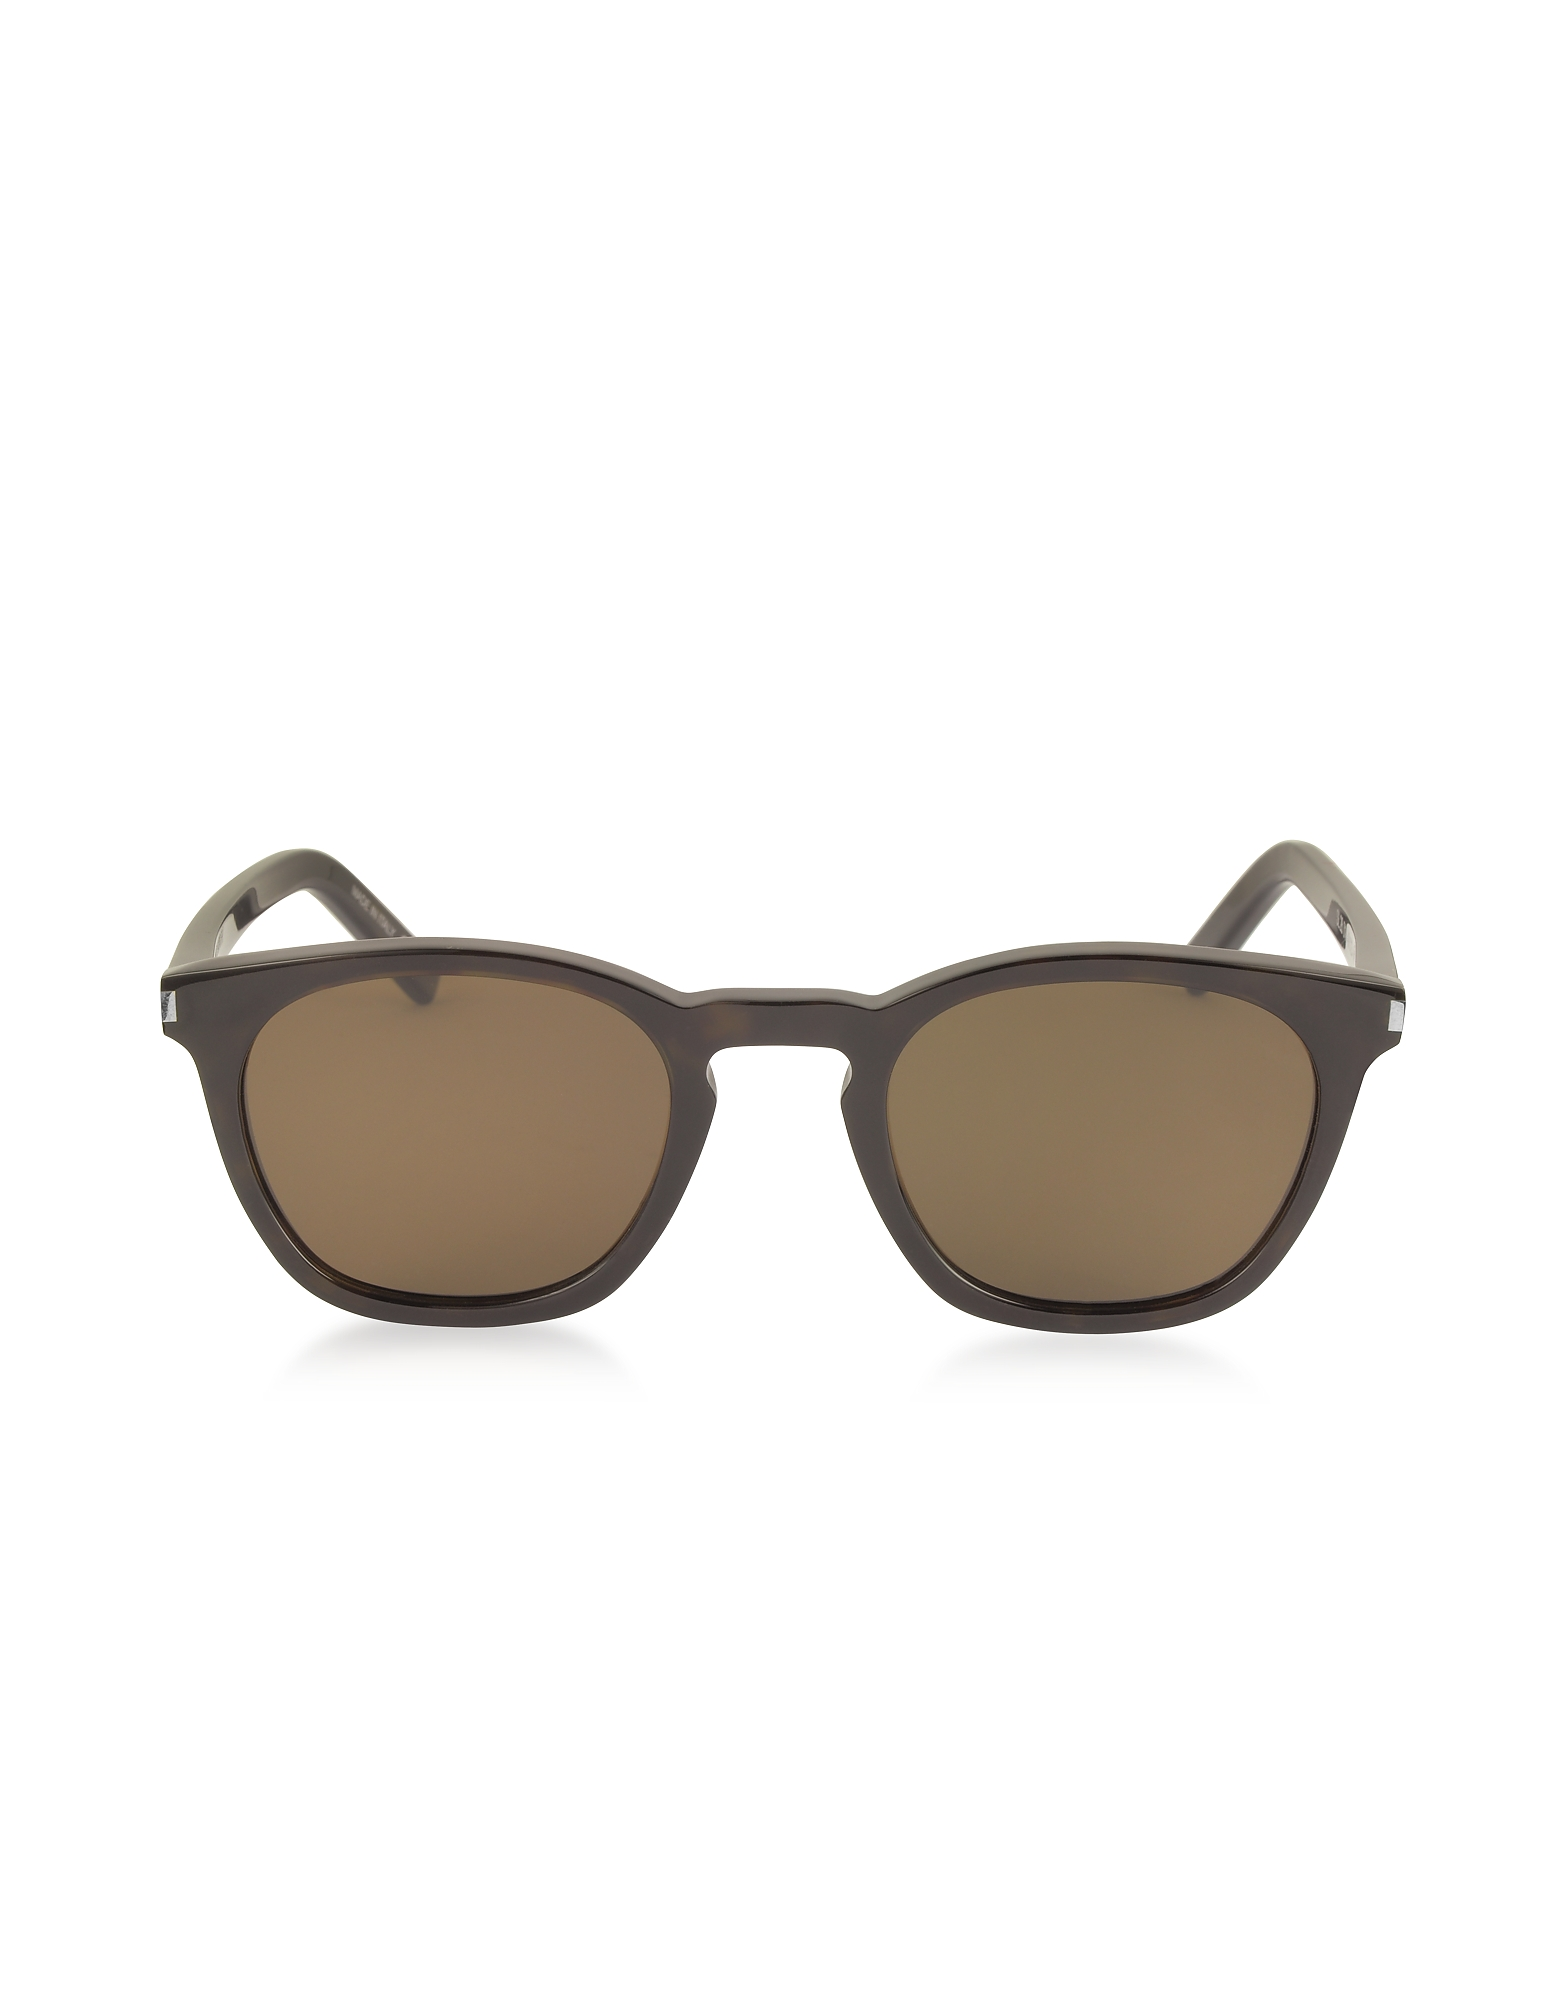 Saint Laurent Sunglasses, SL 28 Acetate Round-Frame Unisex Sunglasses